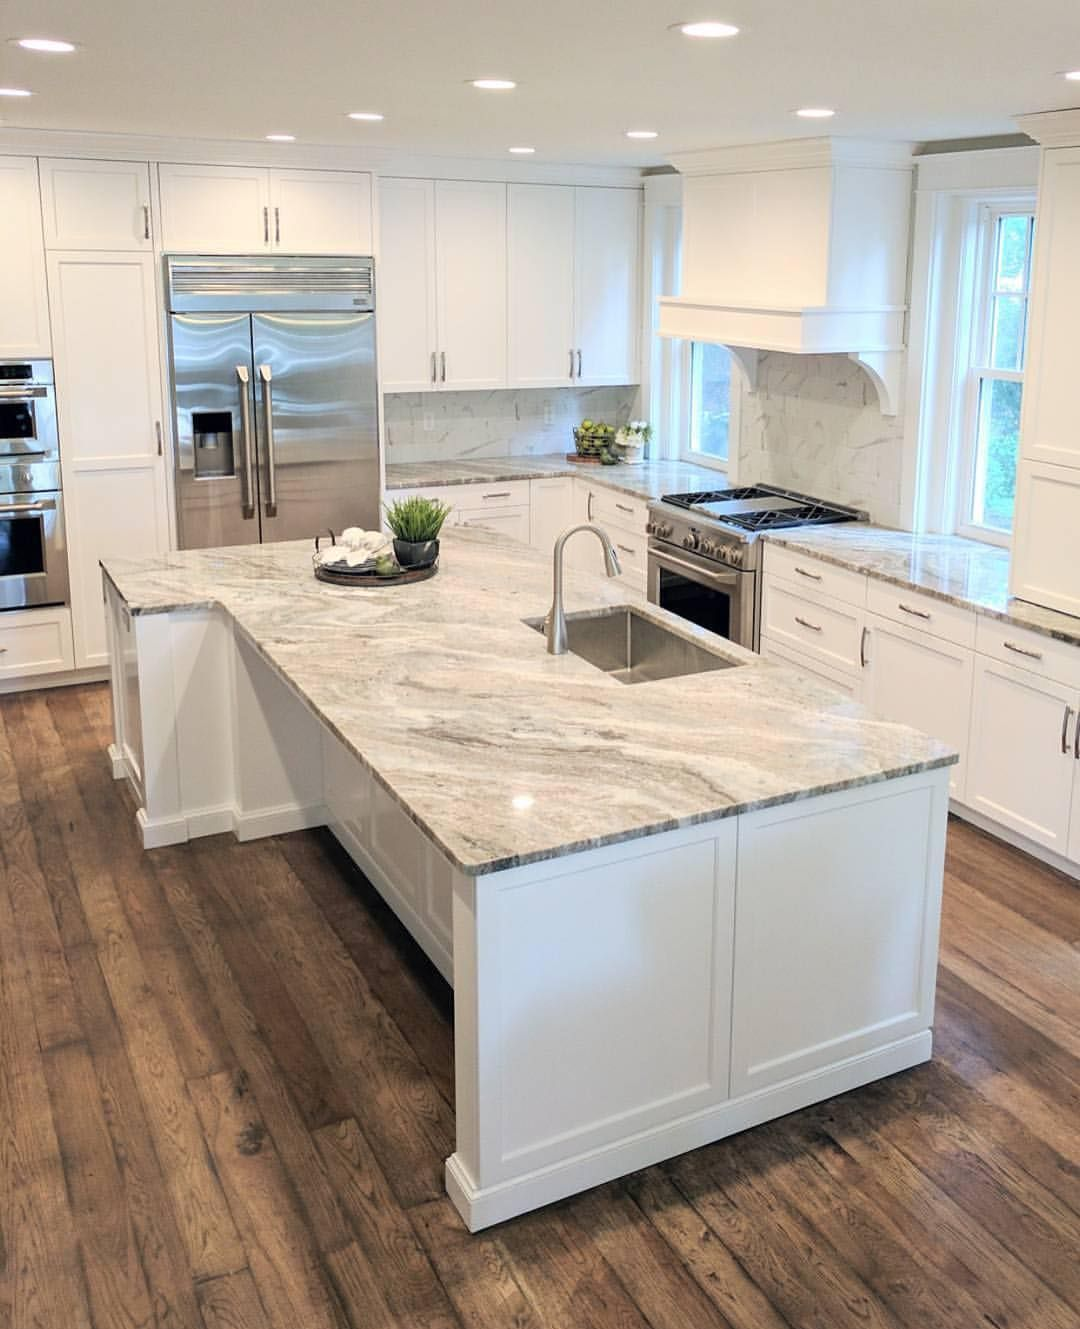 Kitchen Countertops Kinds: Home Decor, Home, Cabinets, Countertops